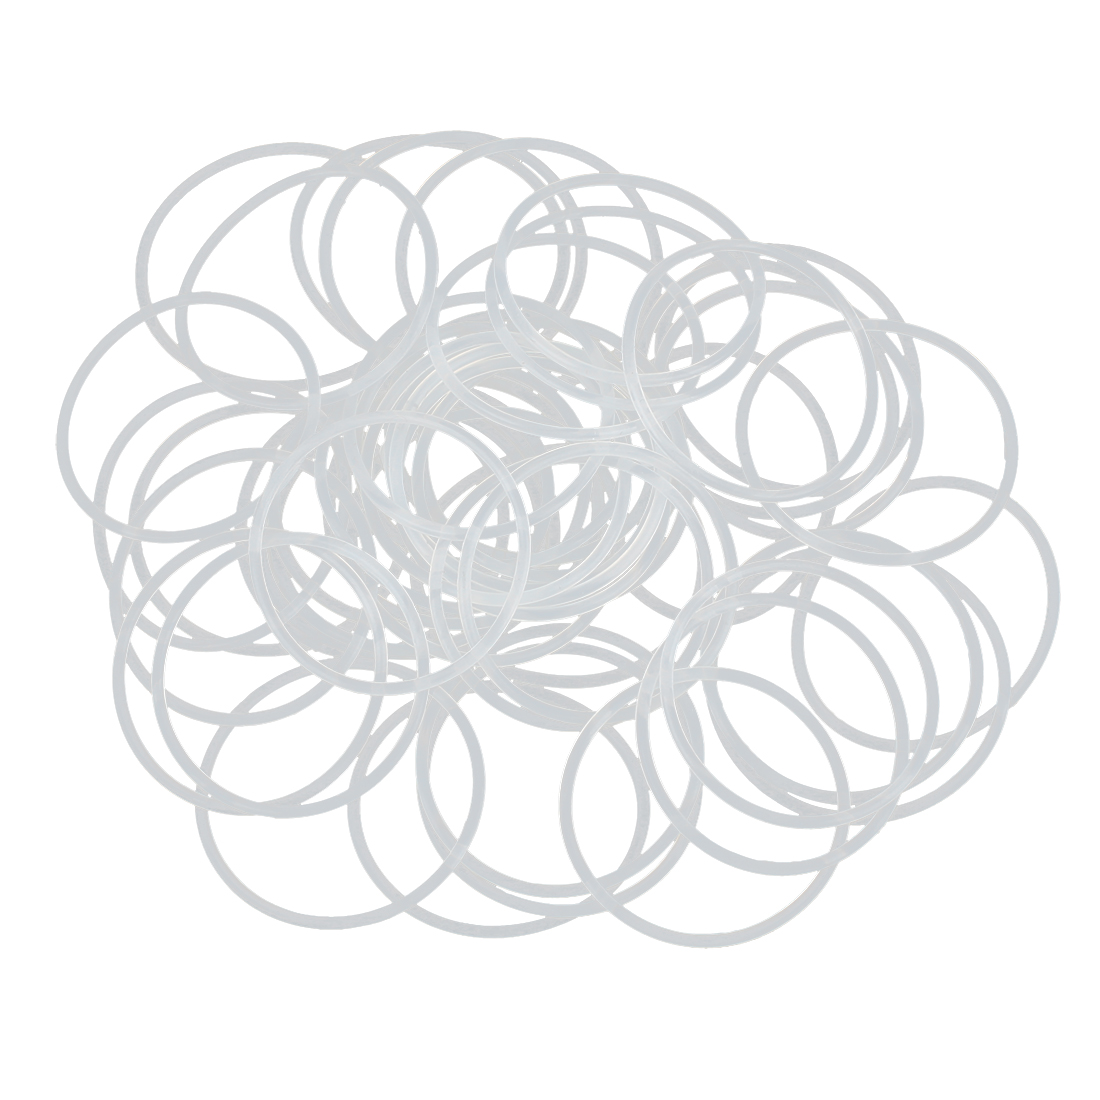 50pcs White Silicone Rubber O-Ring Seal Gasket Washer 36 x 1.5mm for Car